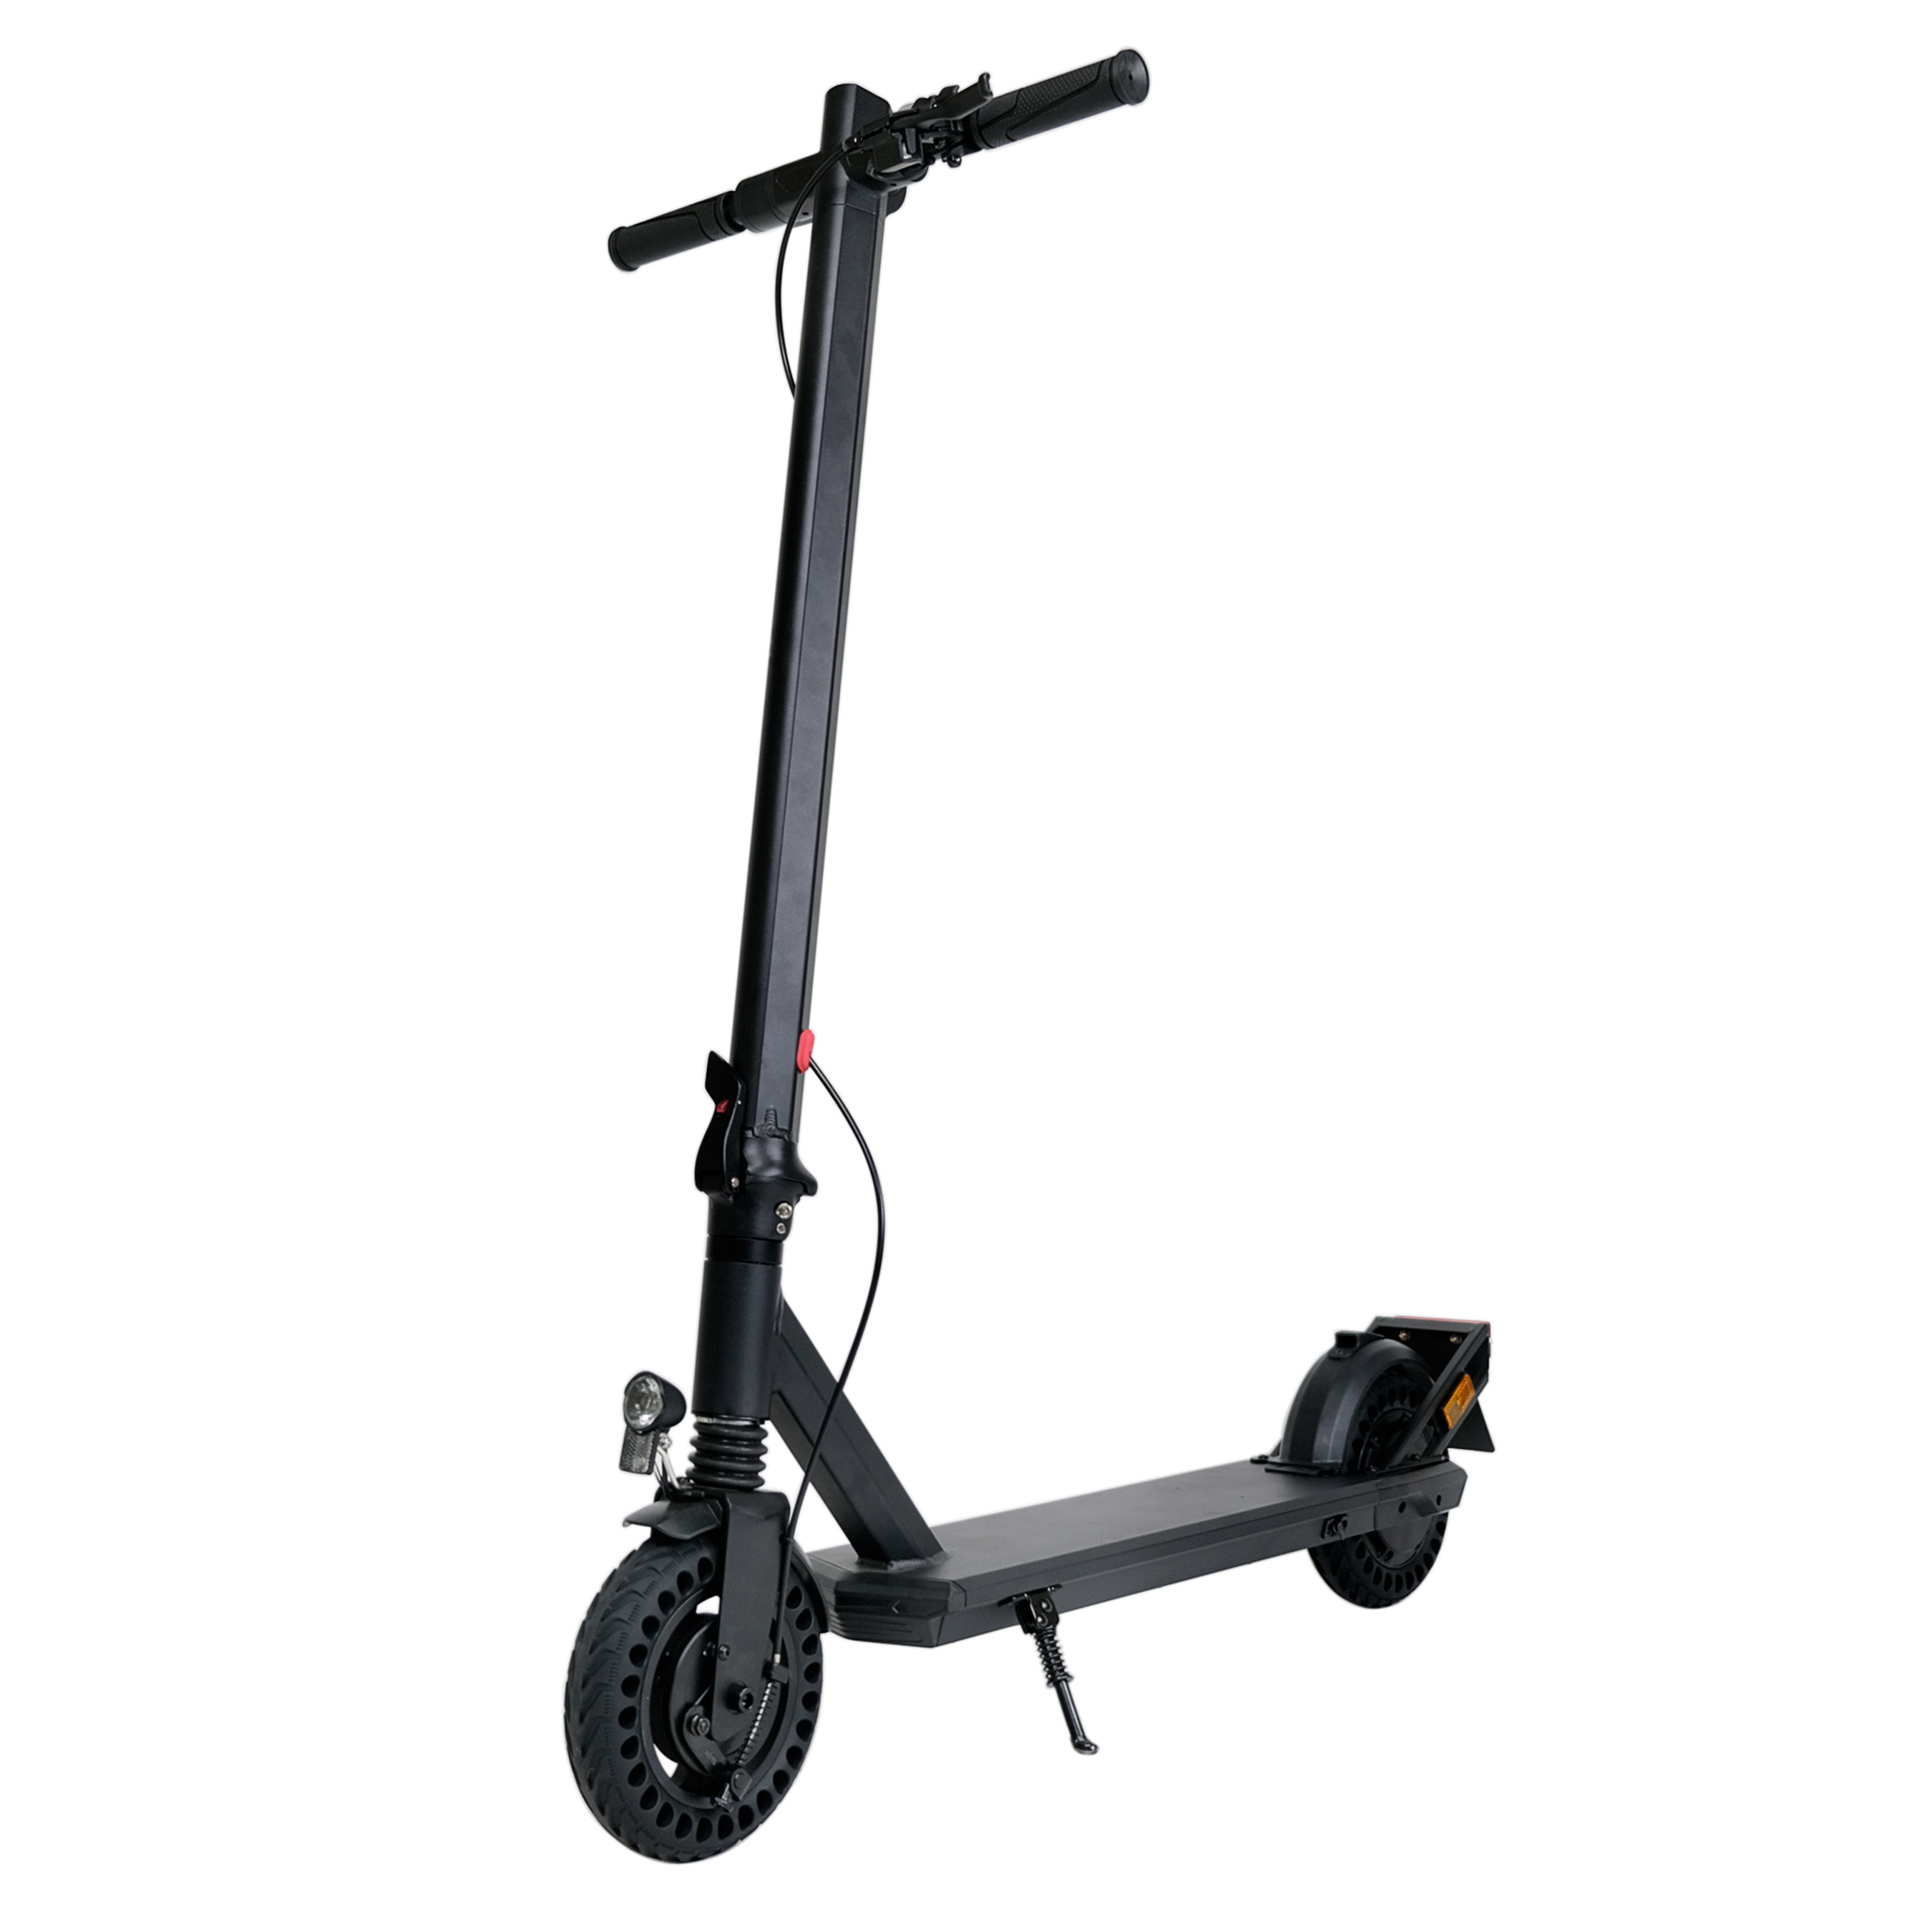 36V 400w about 25KM/h Range Alloy+ABS+PC Foldable Electric Scooter